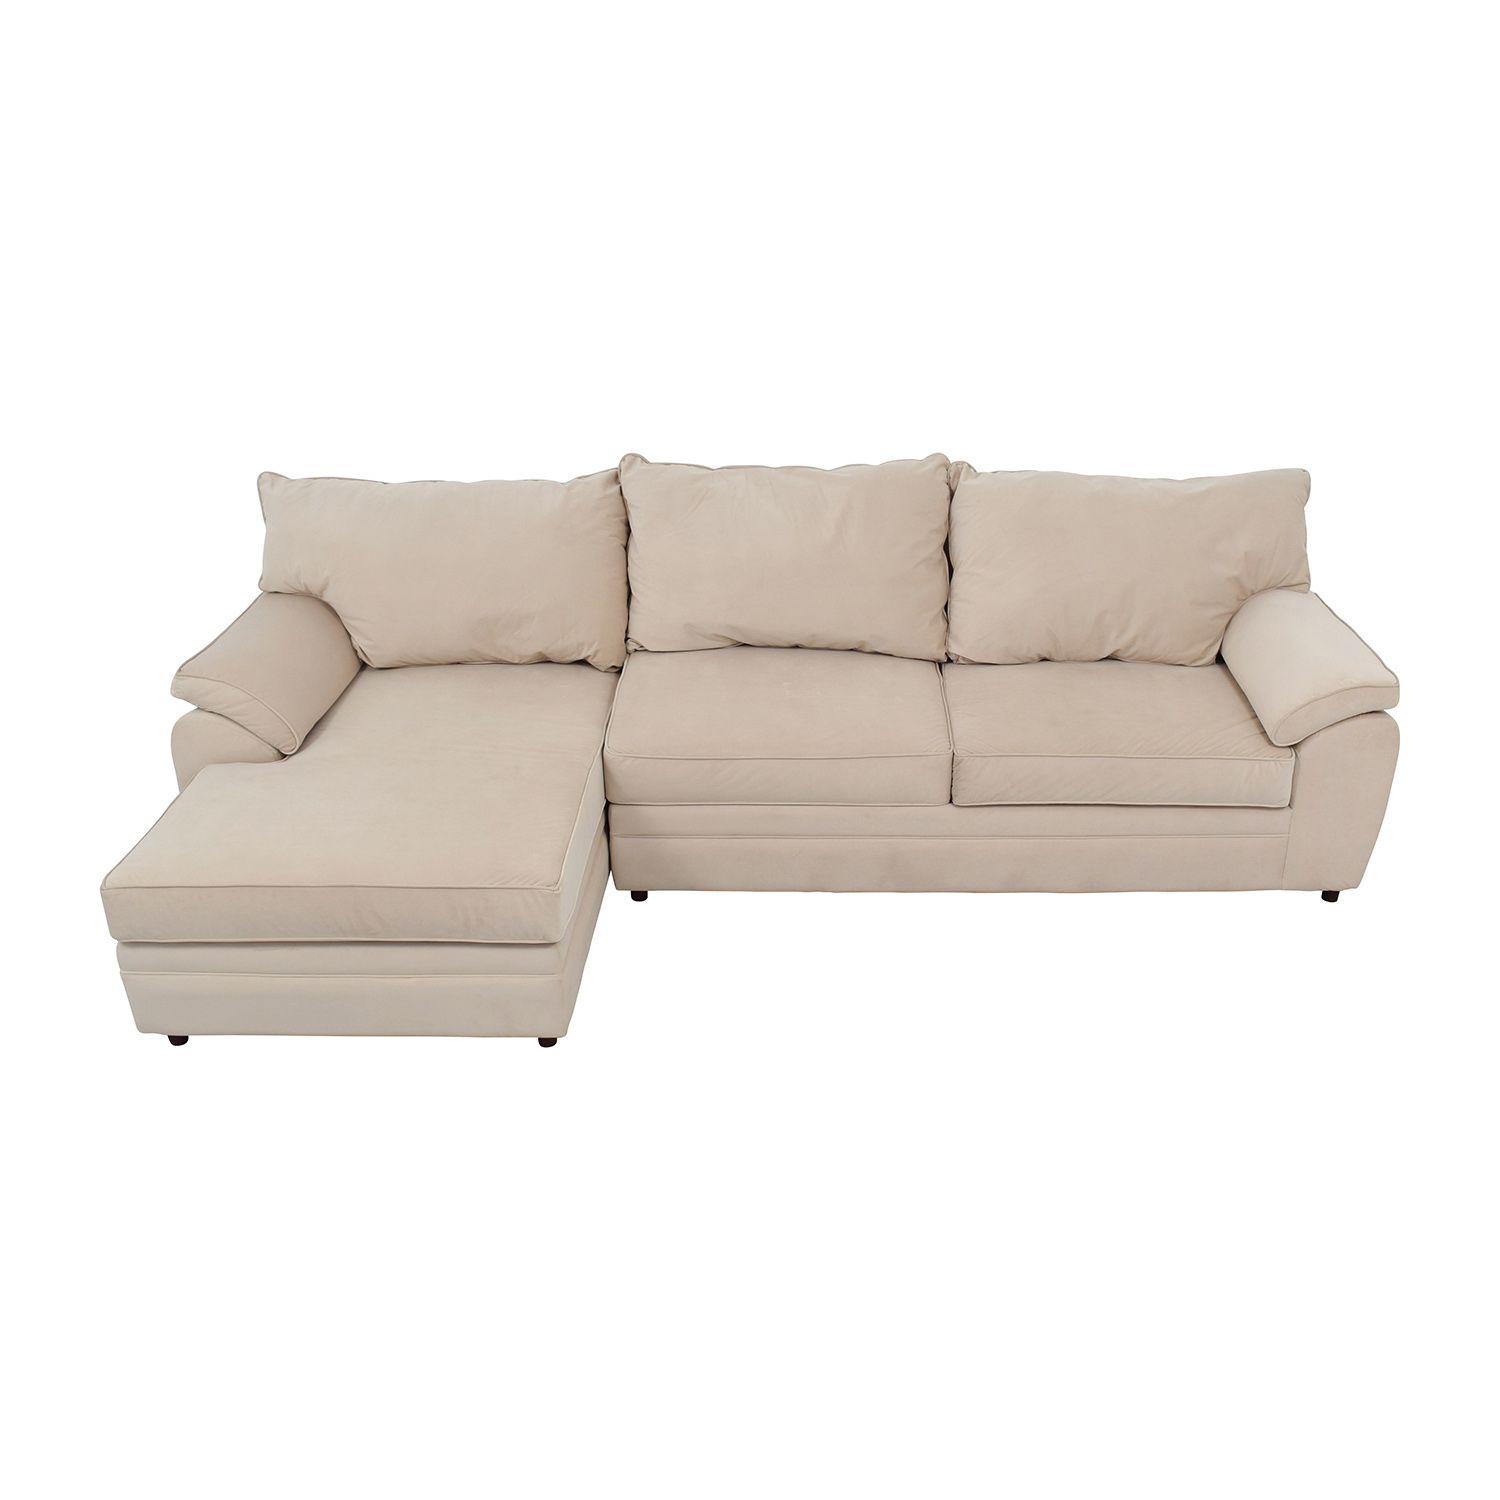 Bob Furniture Off-White Right Chaise Sectional Bobs Furniture